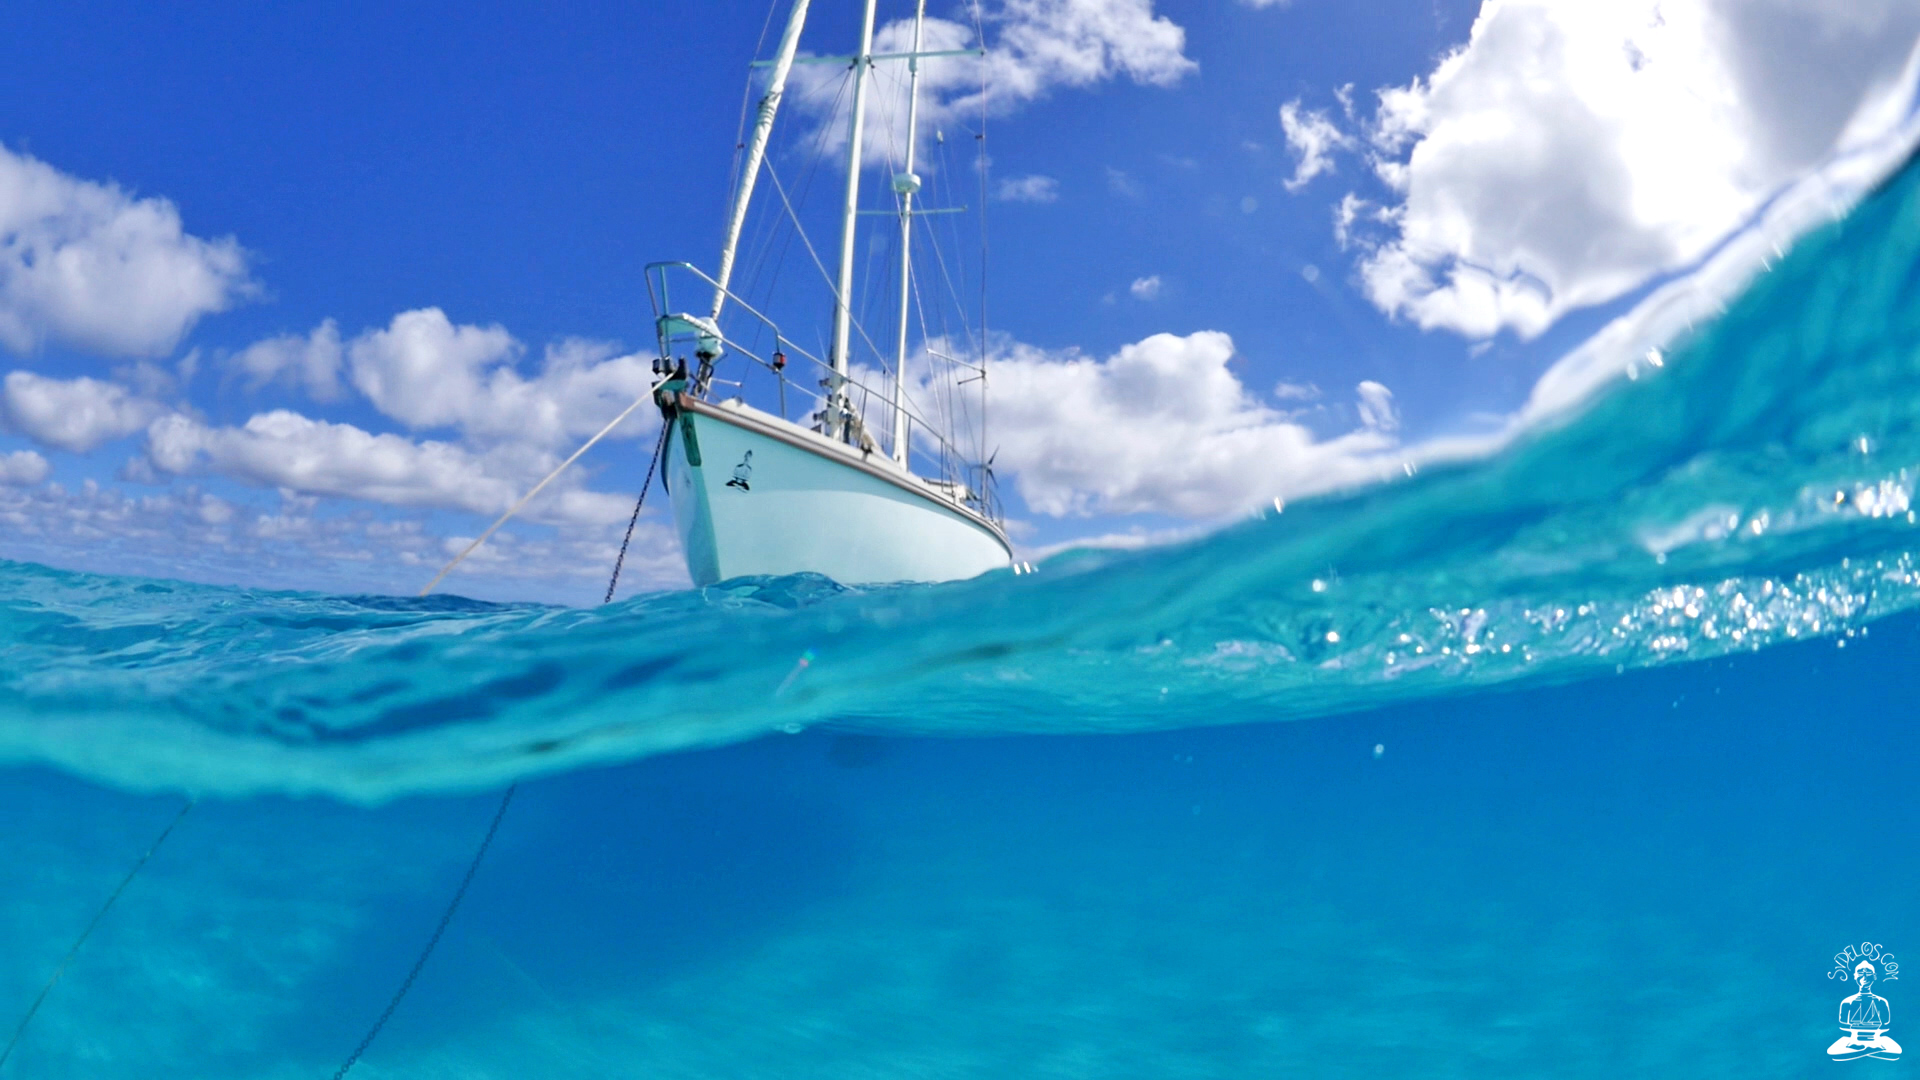 sailboat desktop backgrounds tropical water free